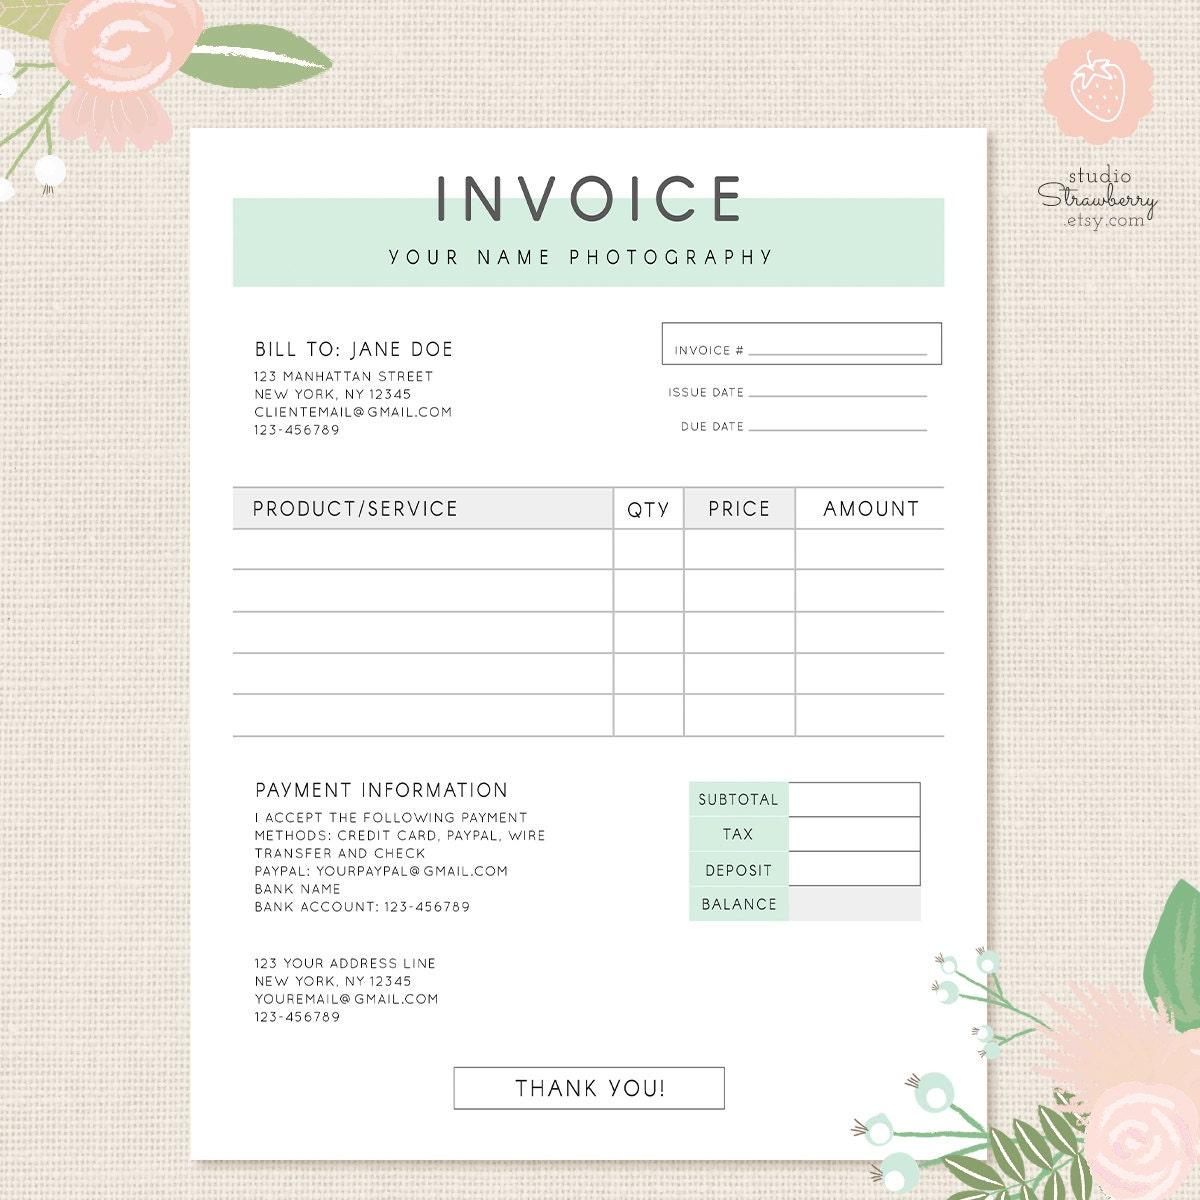 Invoice Template Photography Invoice Business Invoice - Photographer invoice template free jordan online store